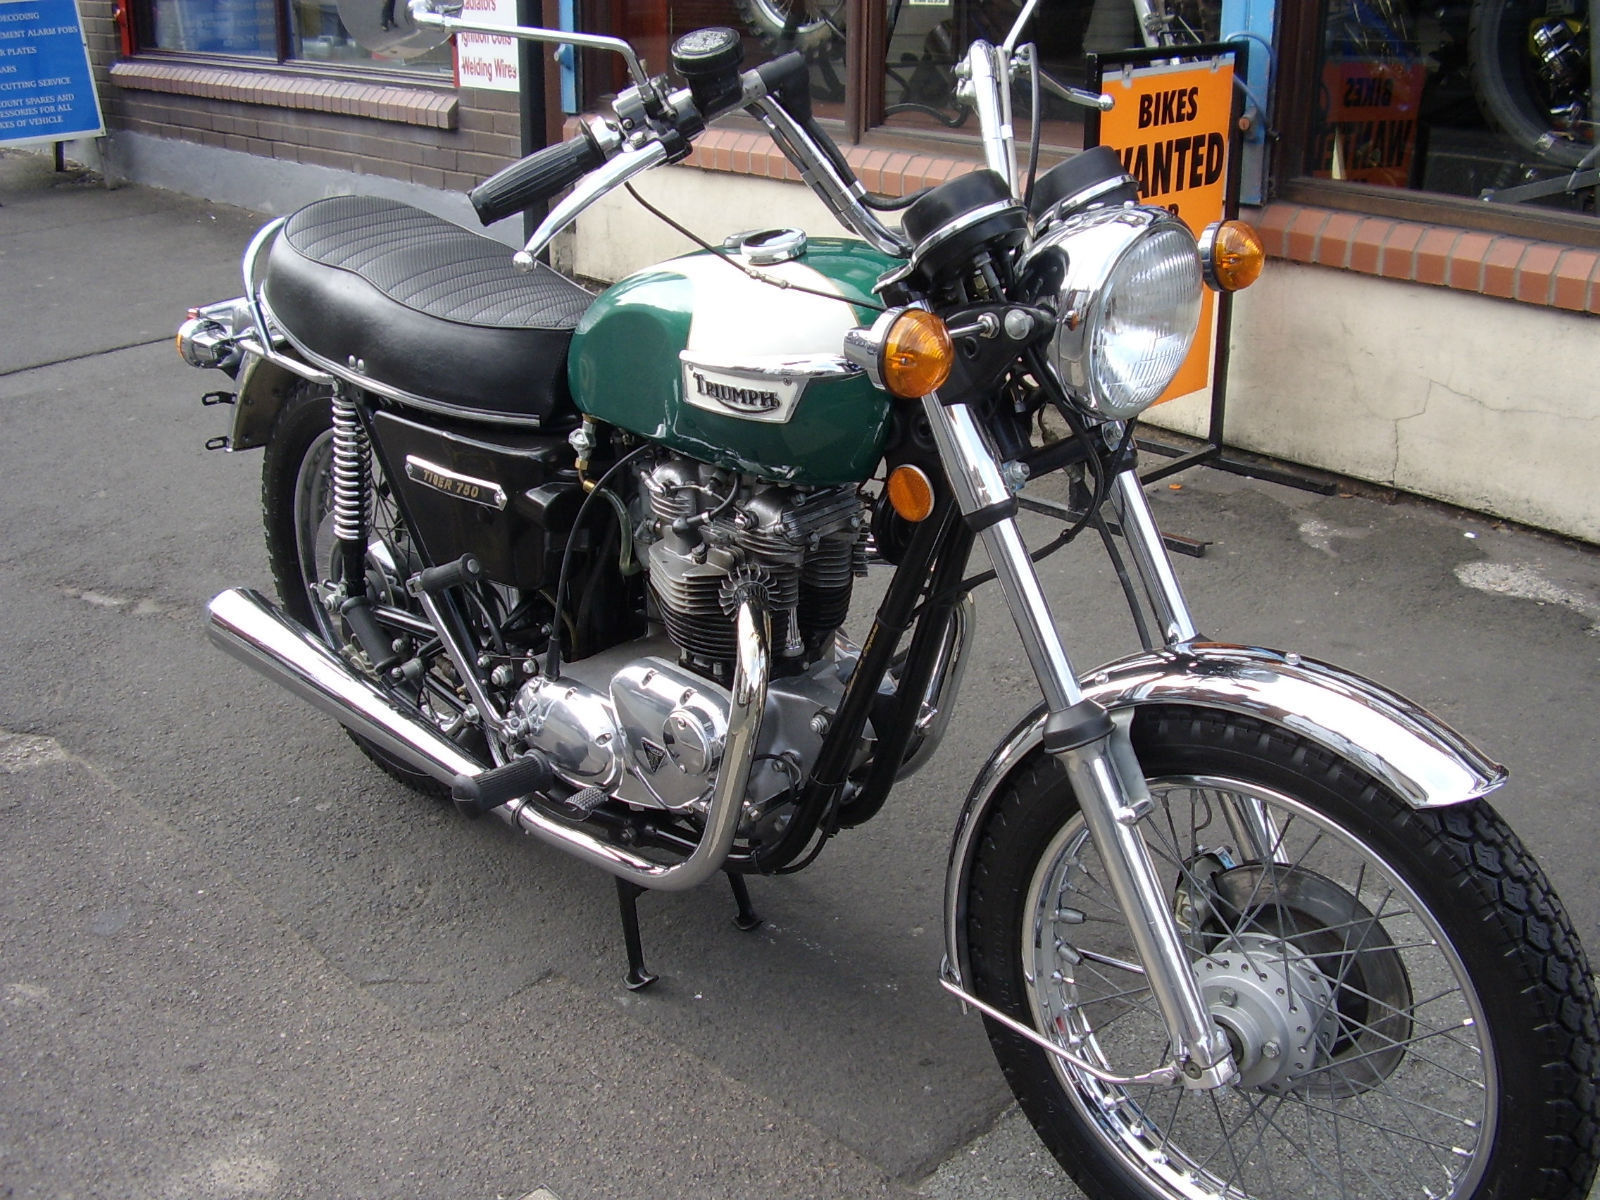 TRIUMPH TR7 TIGER 750 CLASSIC US SPEC 2,325 MLS FROM NEW MOTORCYCLE